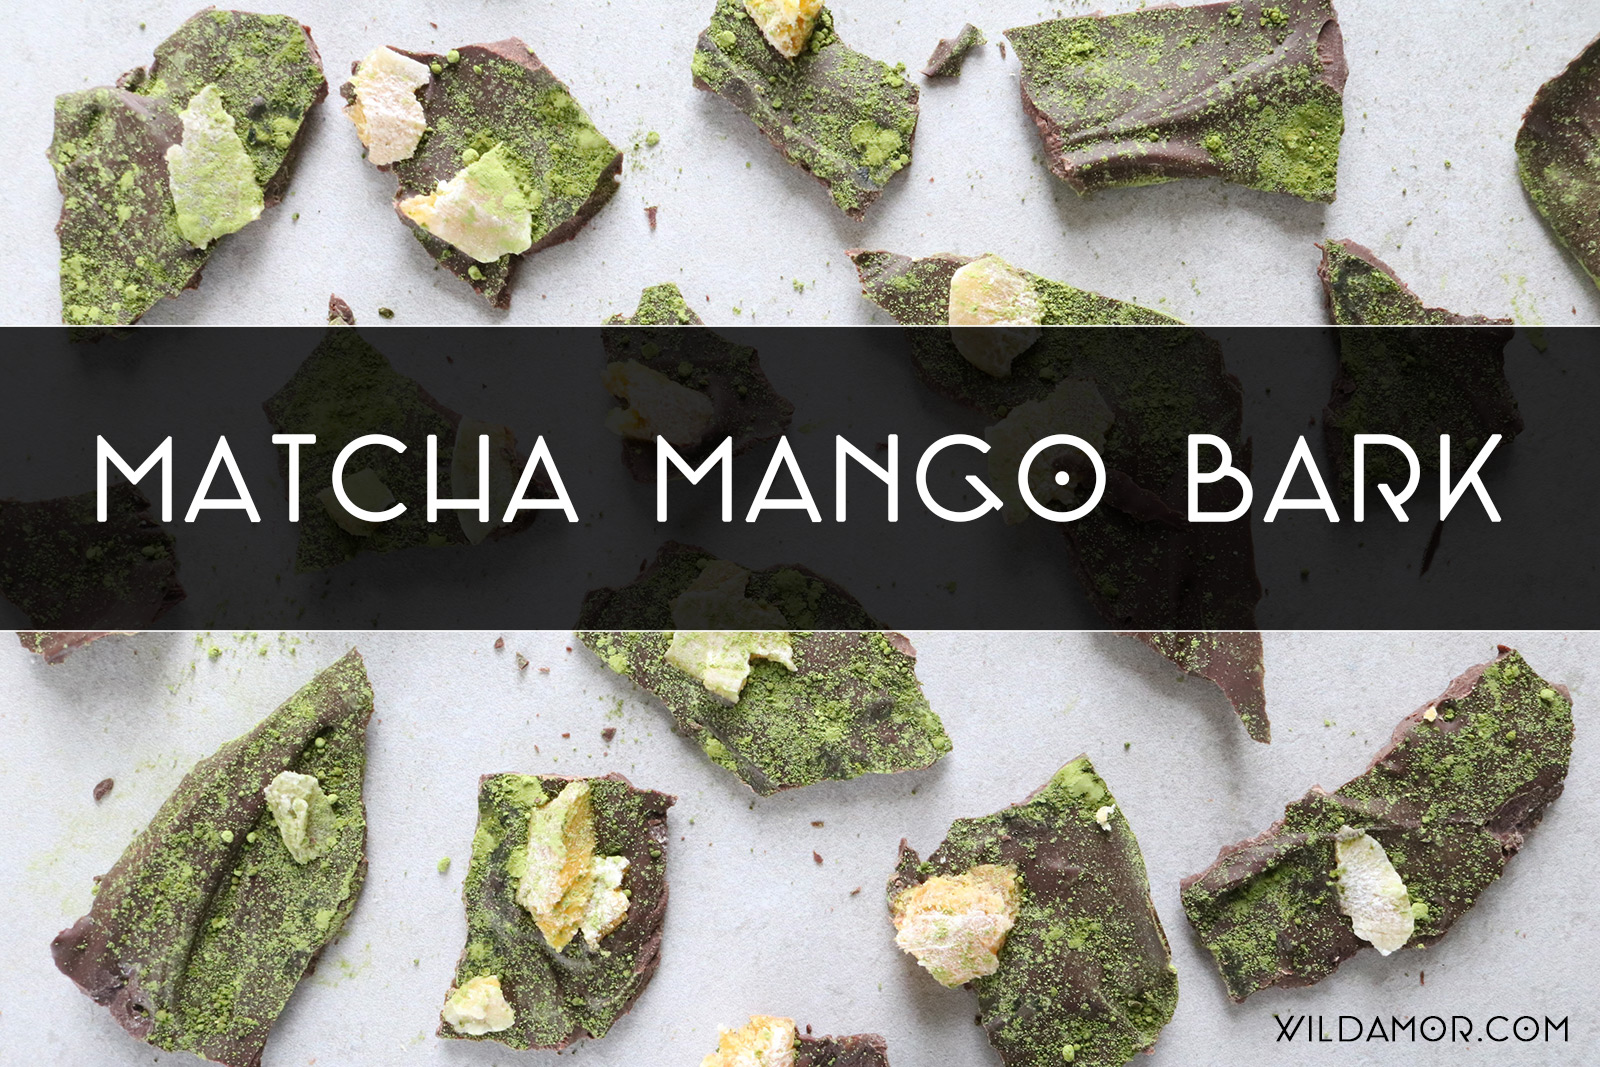 Matcha Mango Bark Recipe